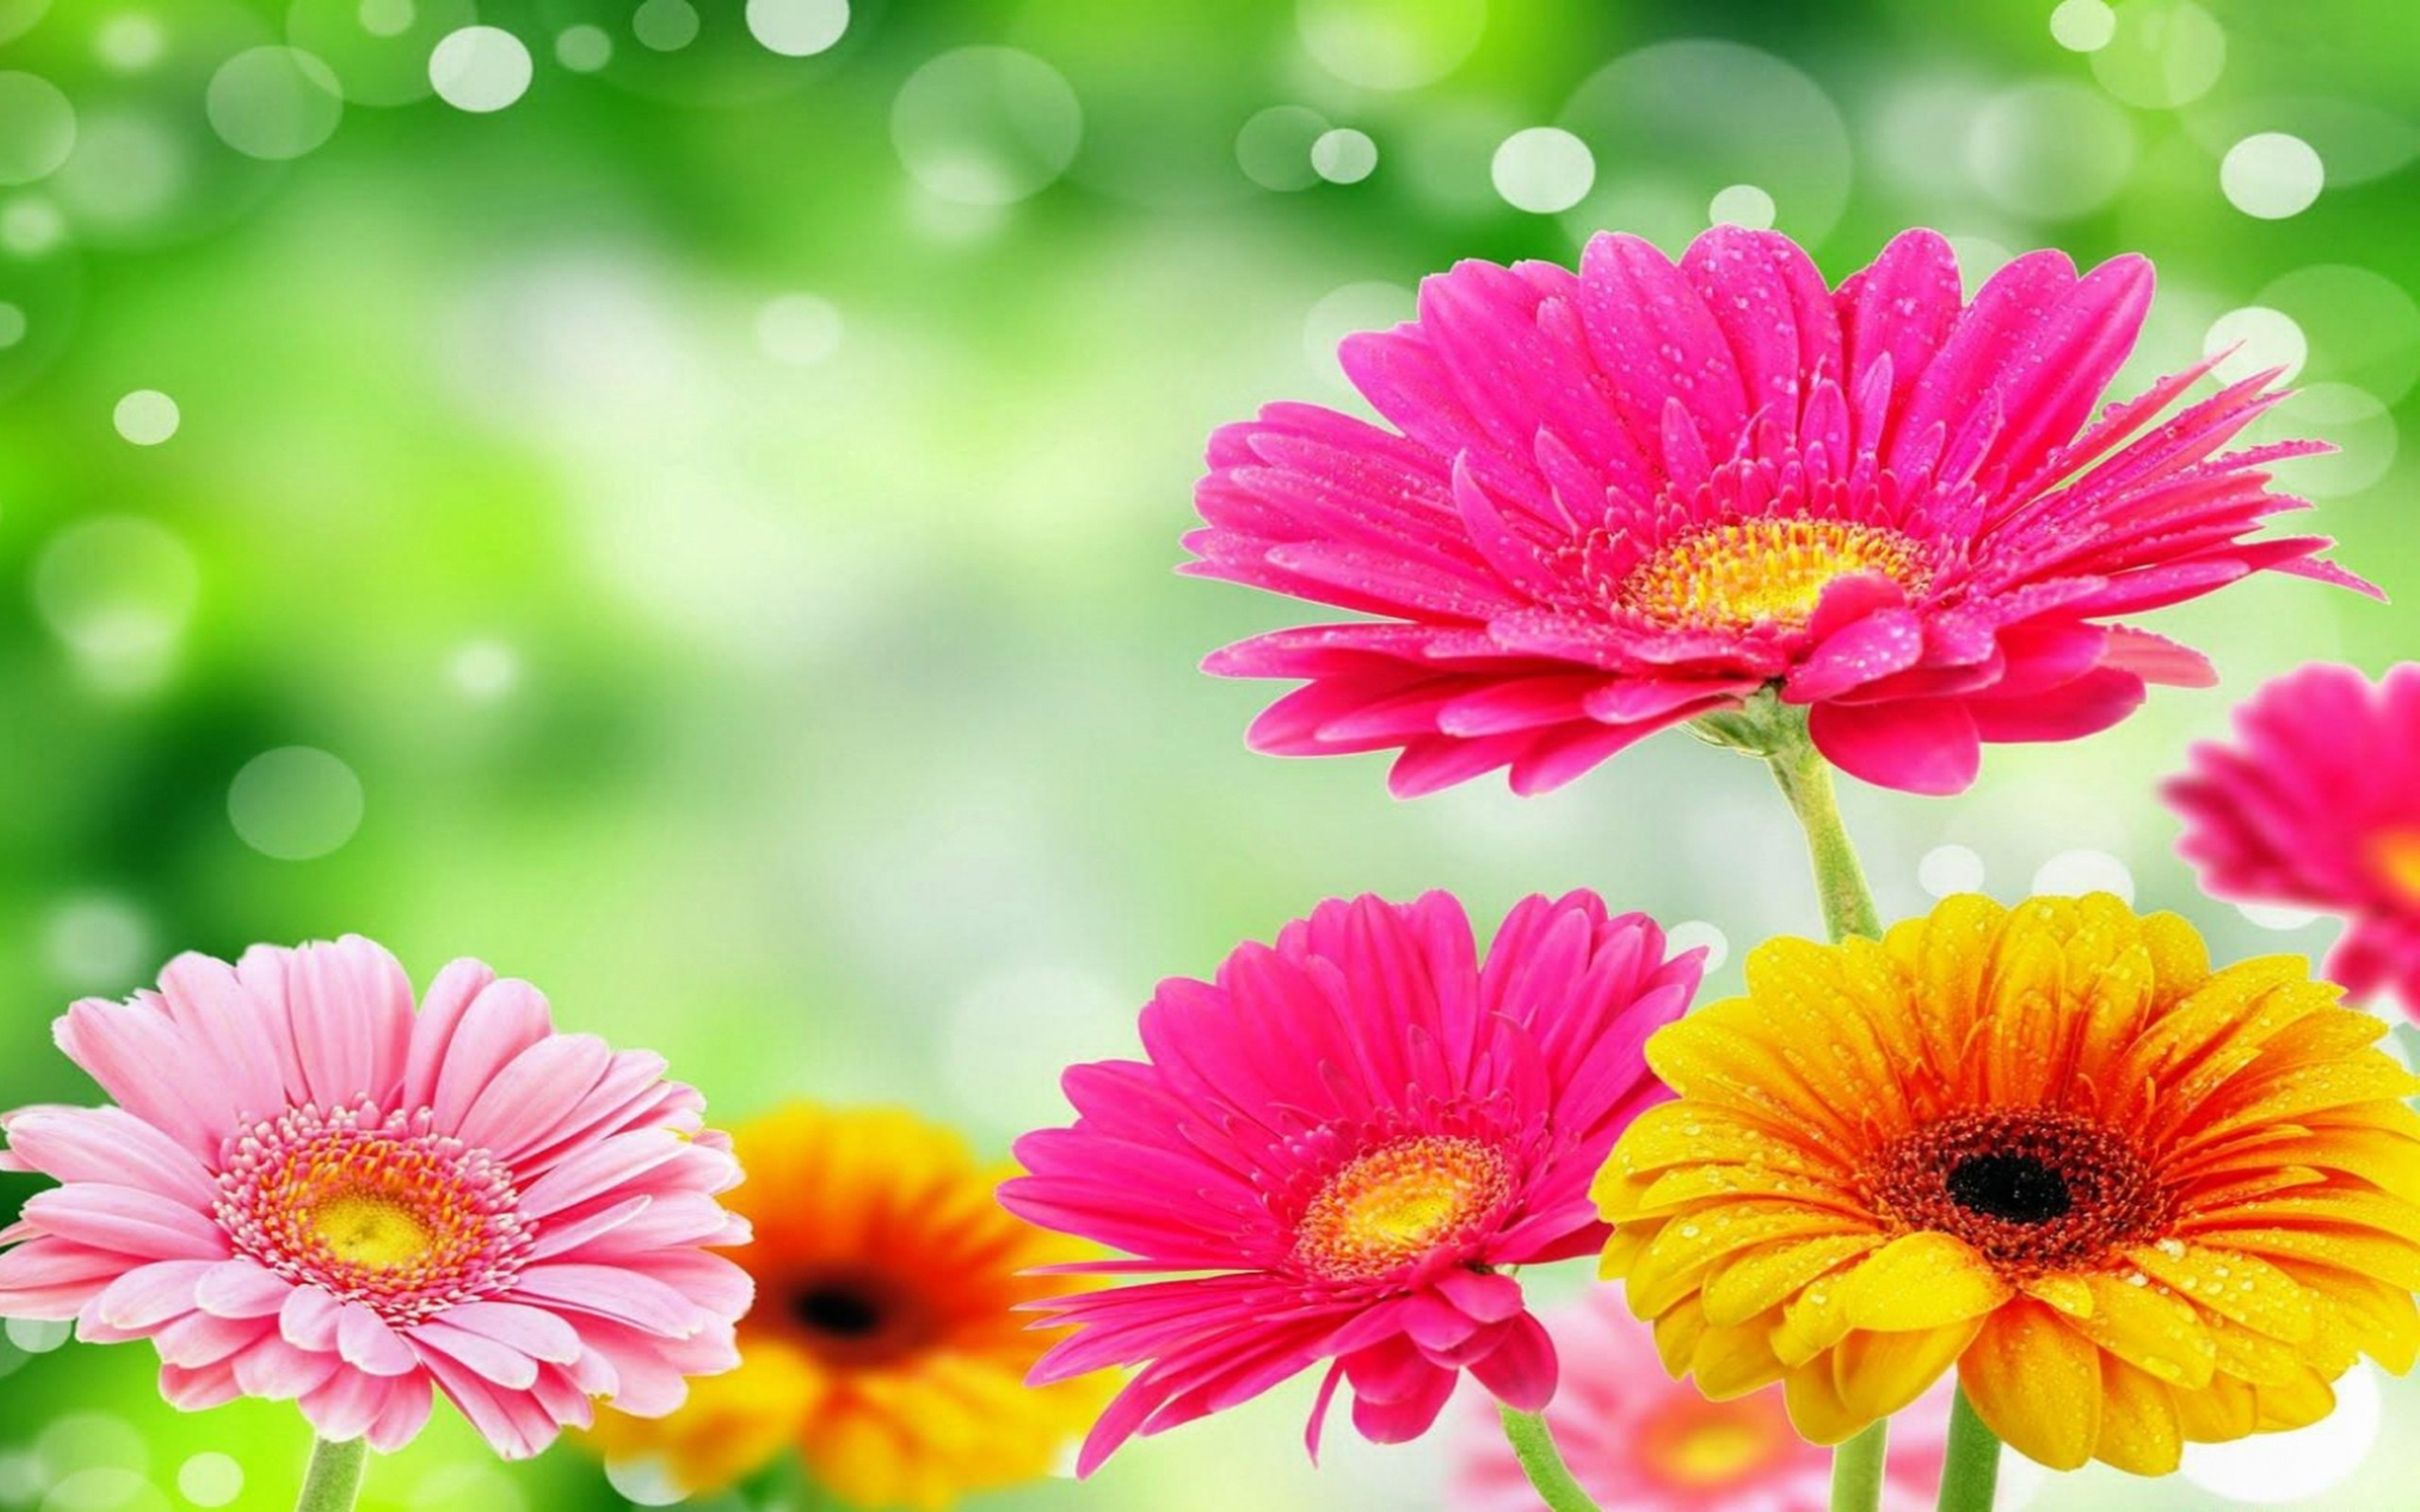 Gerbera daisies wallpapers 51 background pictures 2560x1600 hd wallpaper background image id682499 izmirmasajfo